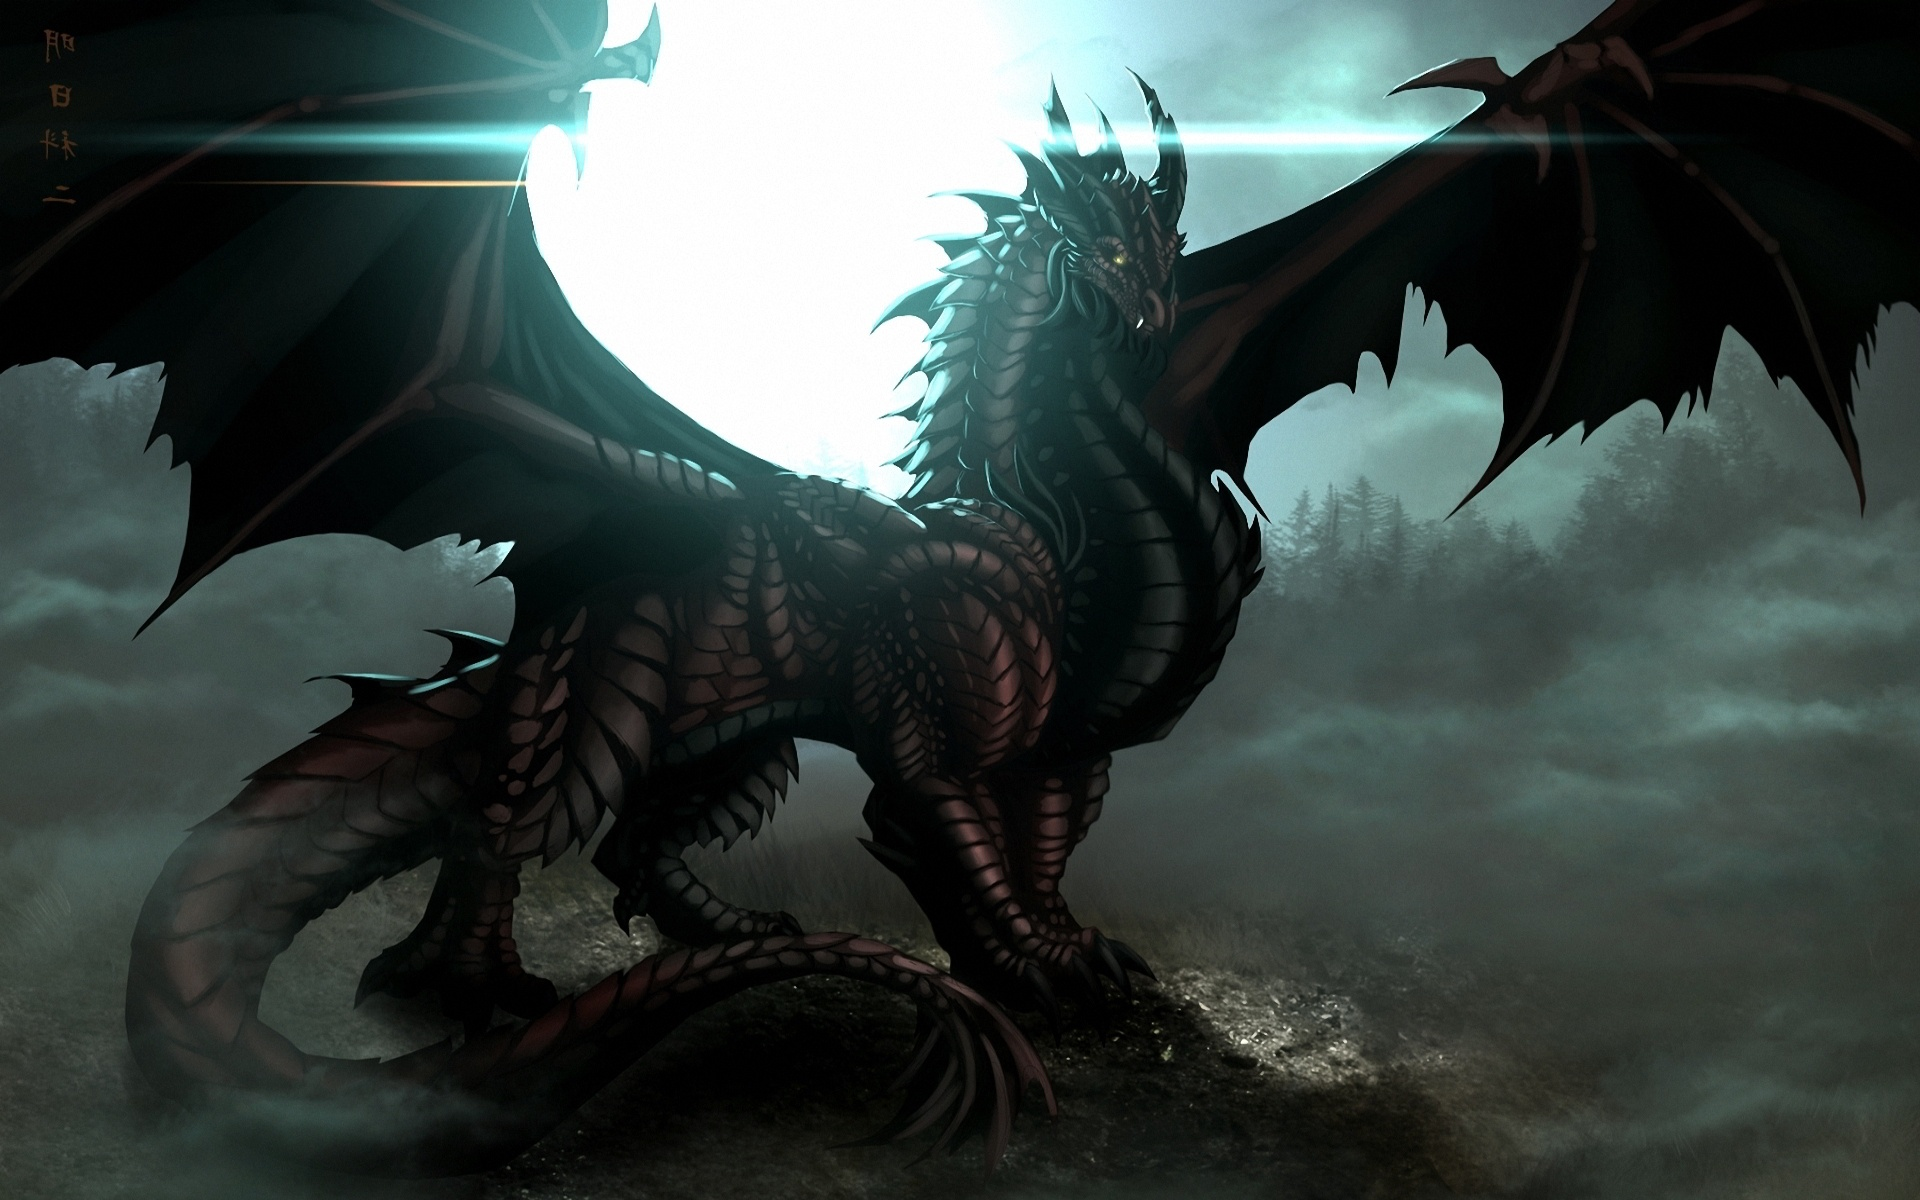 Dark Dragon with Spread Wings